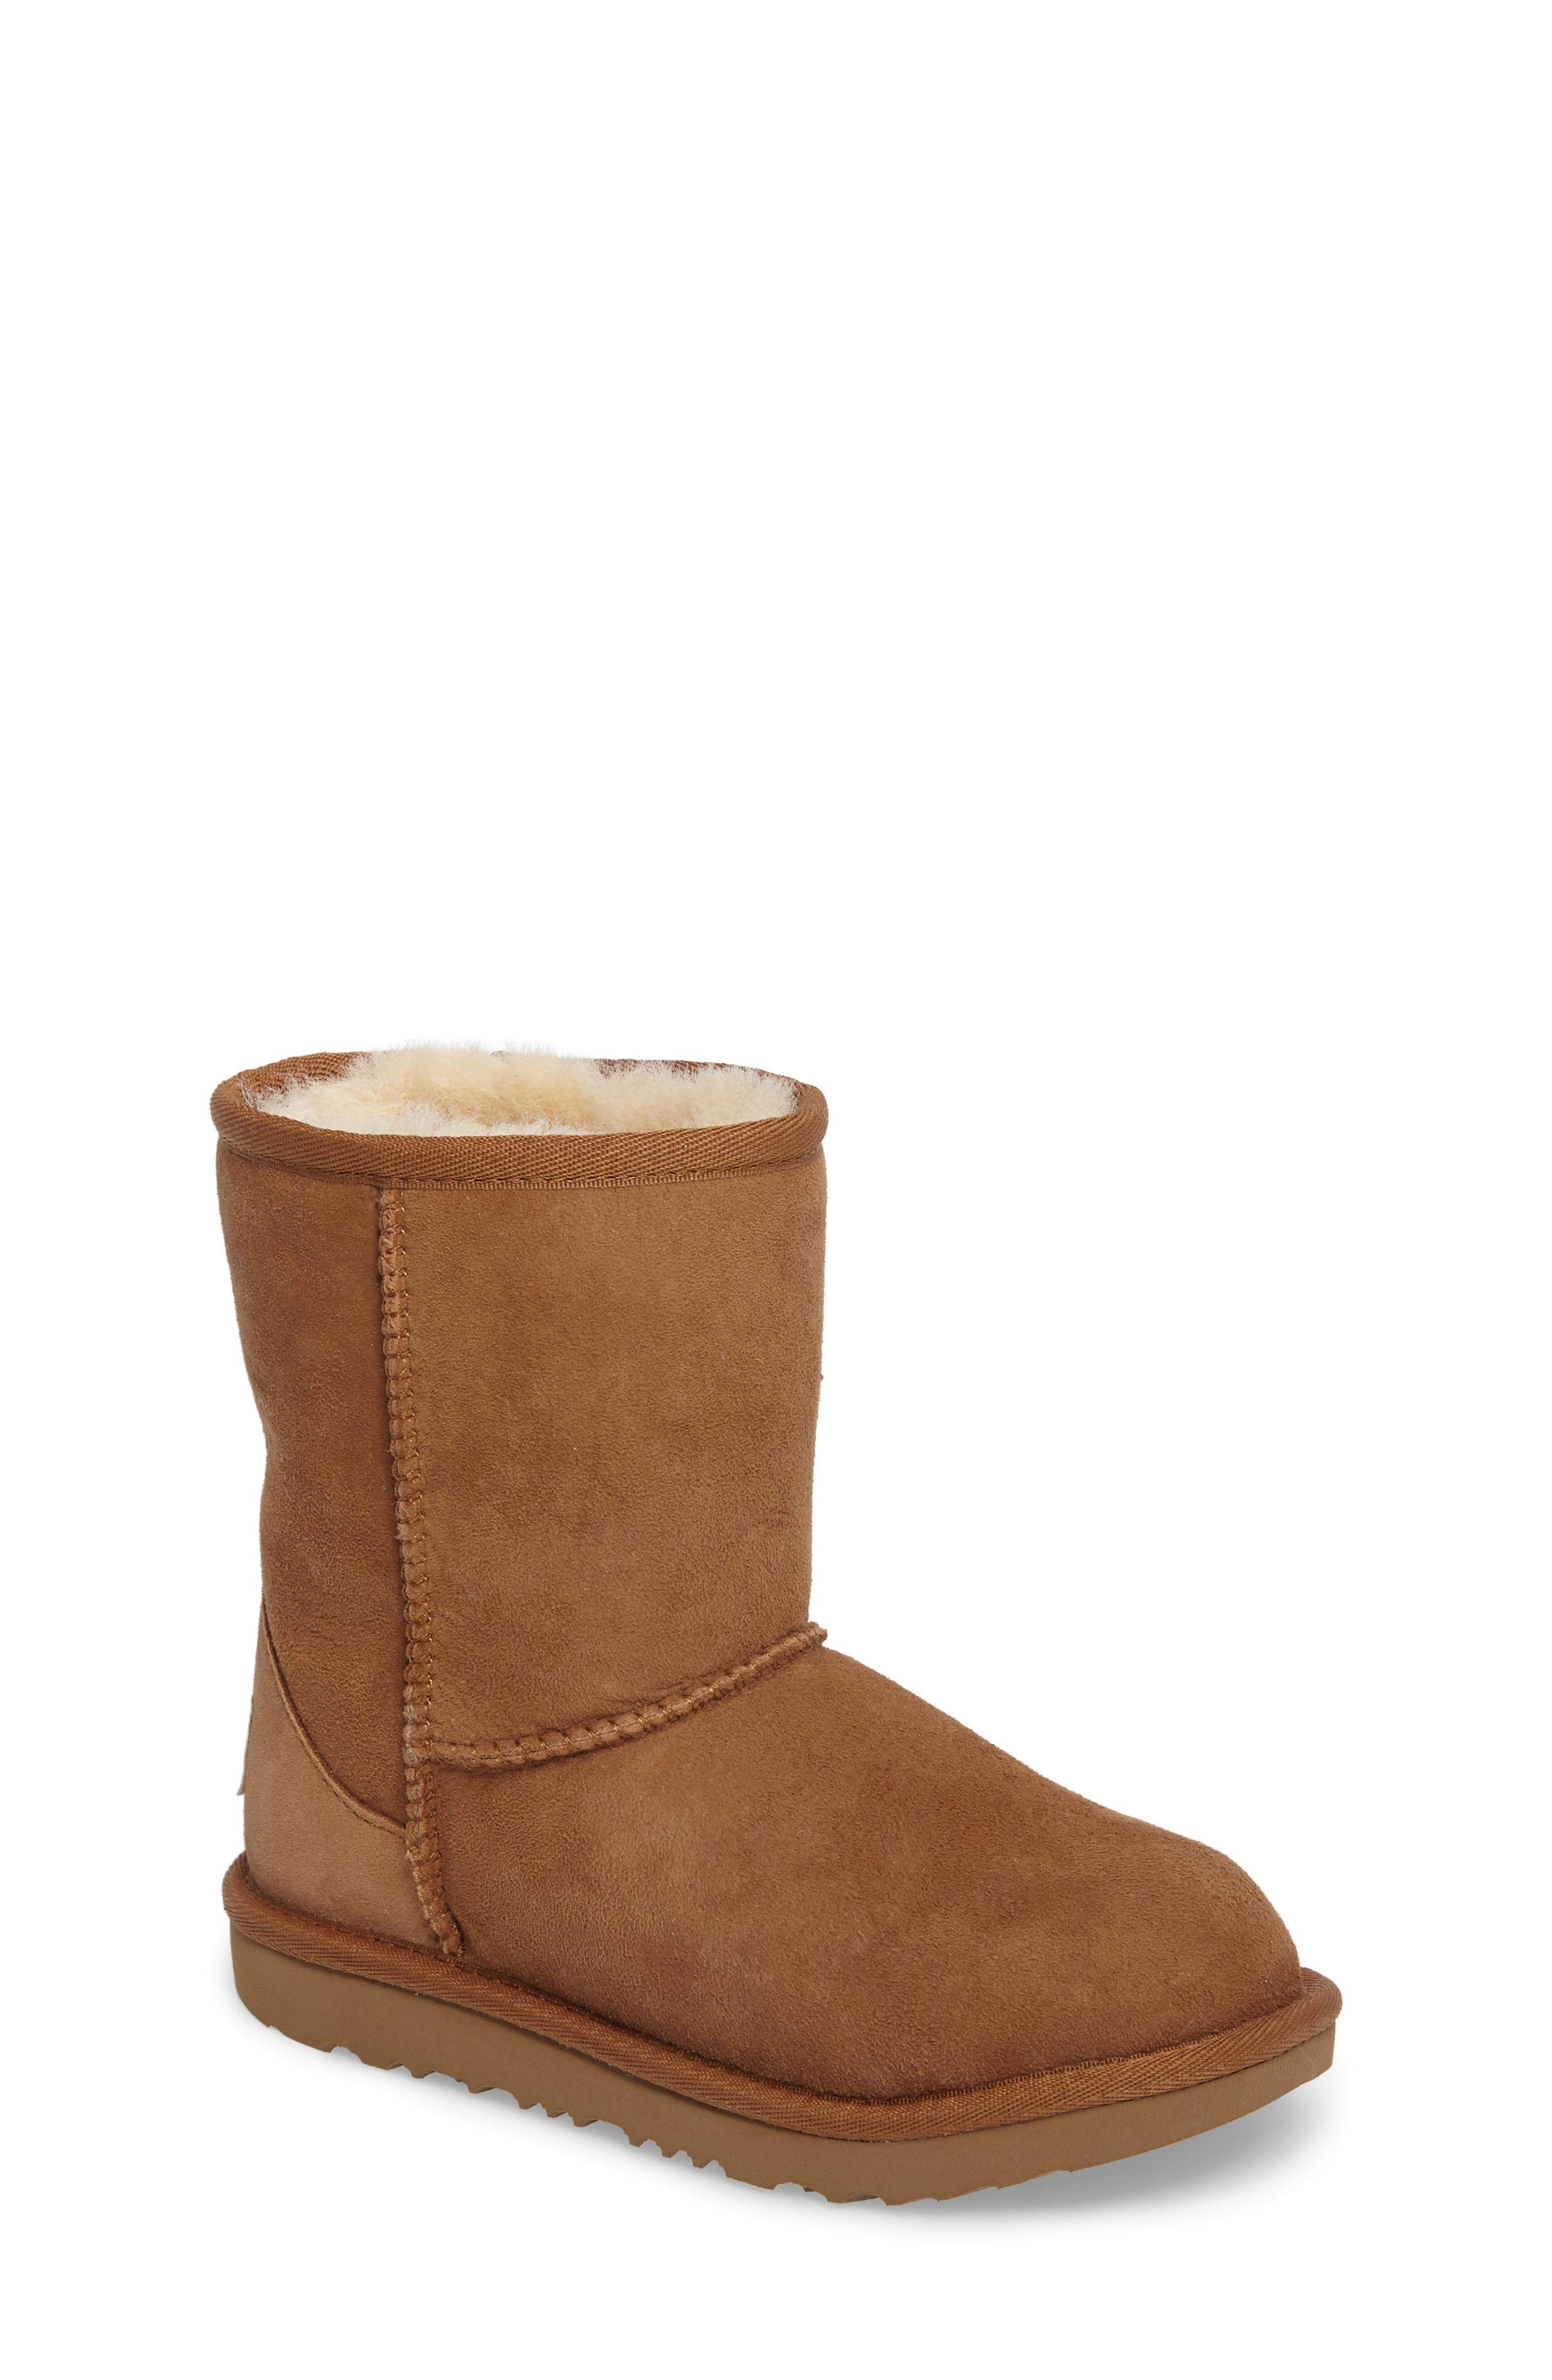 Classic II Water Resistant Genuine Shearling Boot,                             Main thumbnail 1, color,                             Chestnut Brown